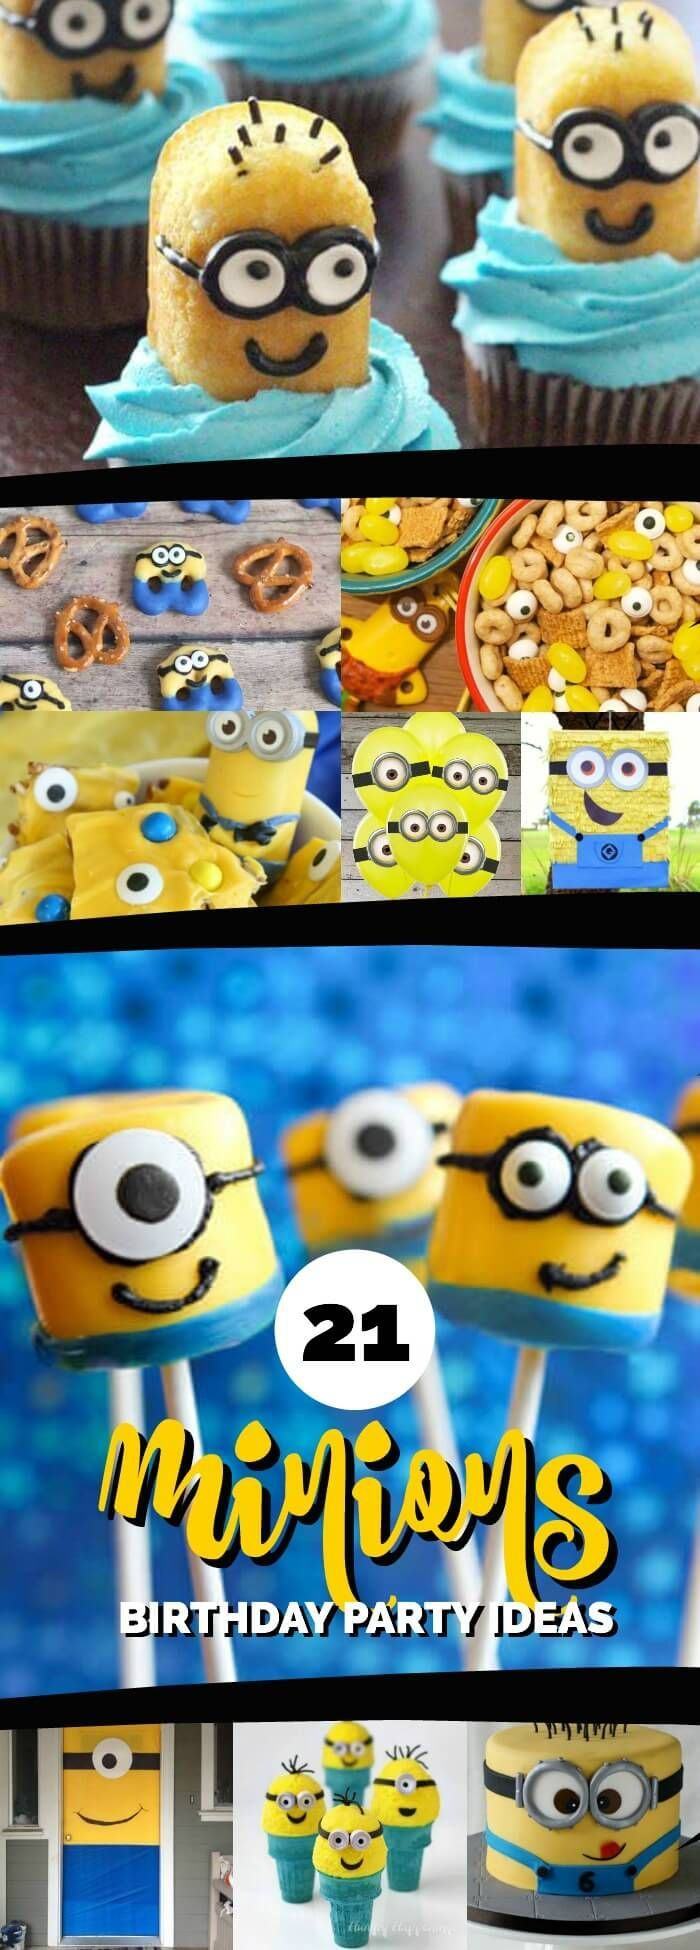 21 Mighty Minion Birthday Party Ideas via @spaceshipslb